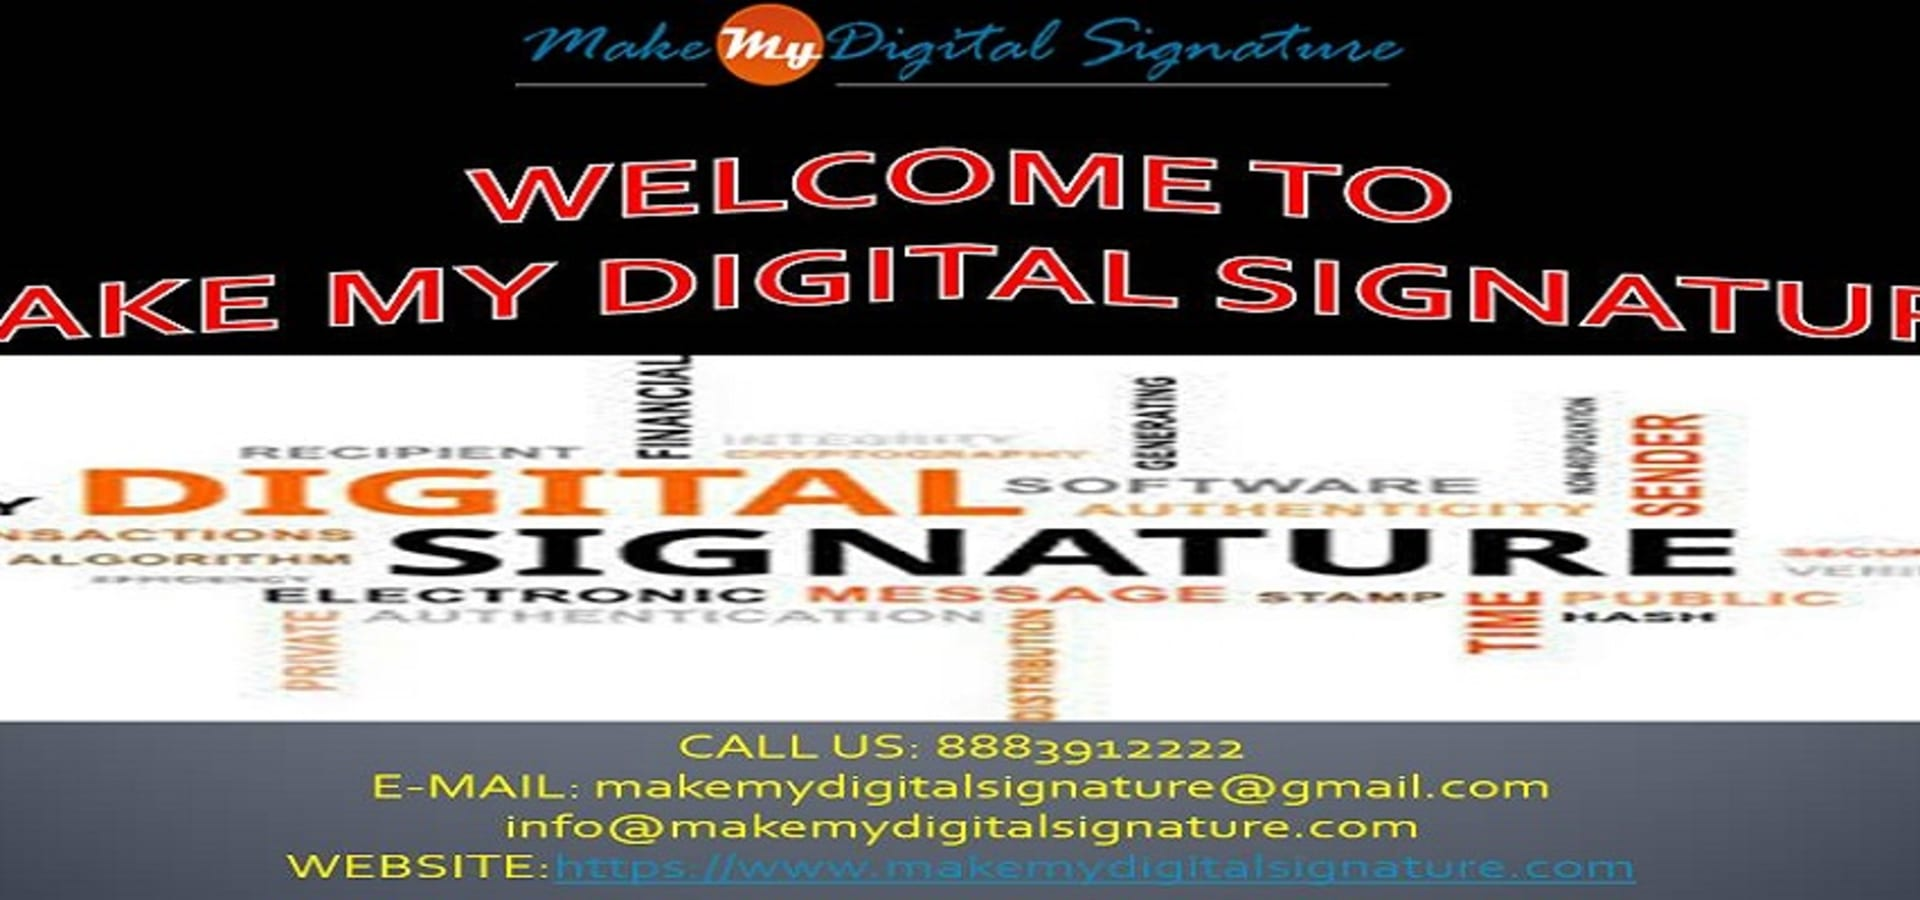 Make My Digital Signature